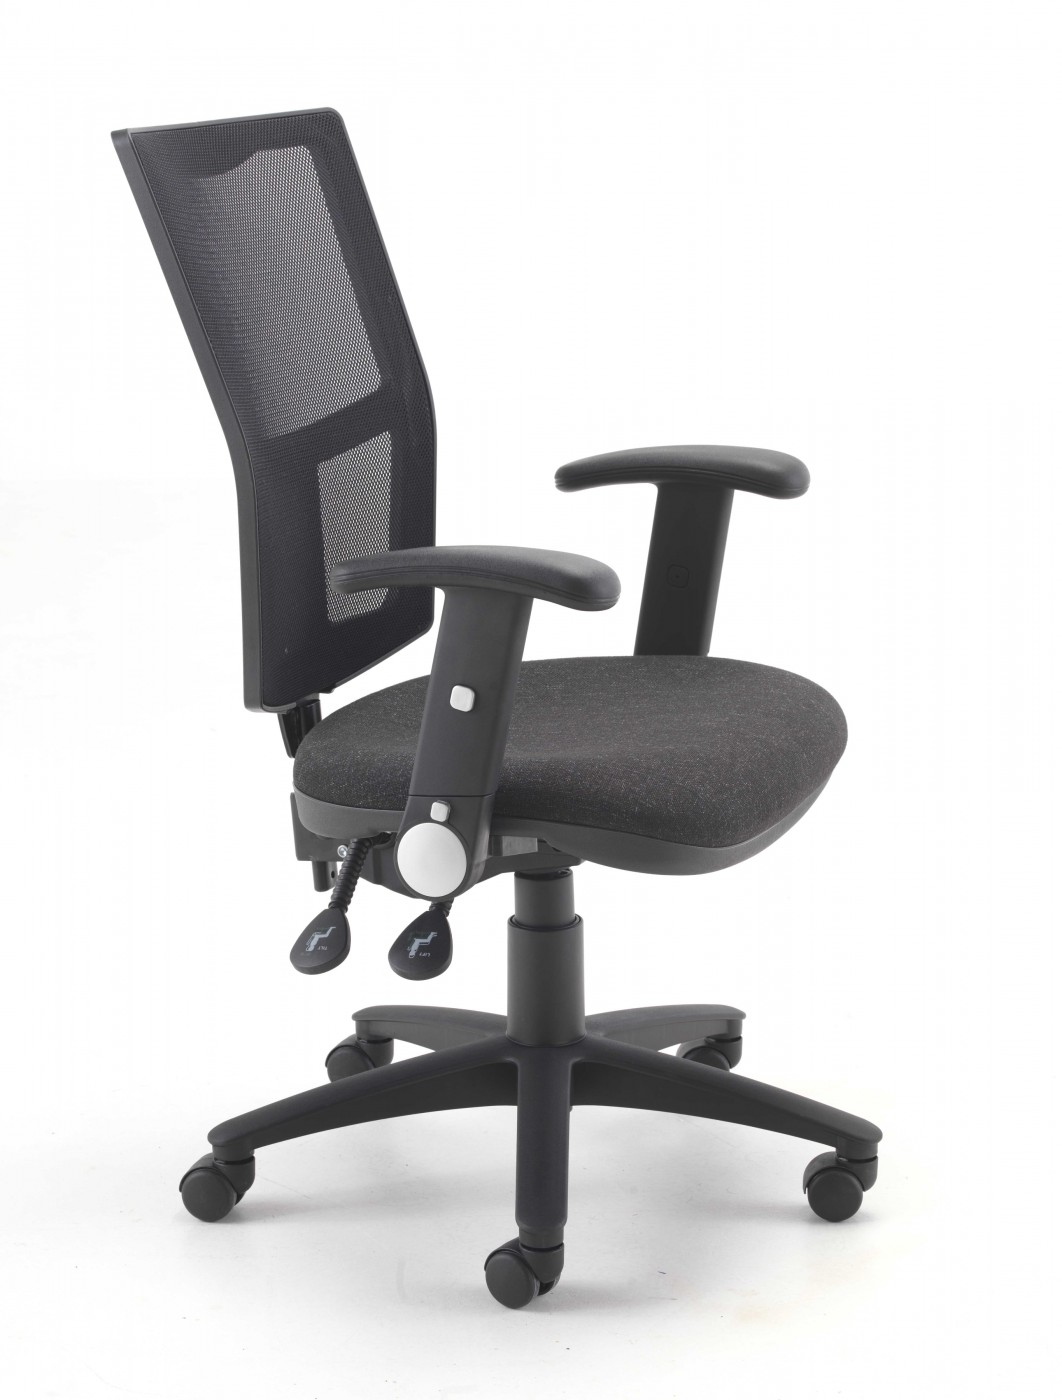 Foldable Gaming Chair Tc Mesh Office Chair Ch2803 43ac1082 121 Office Furniture